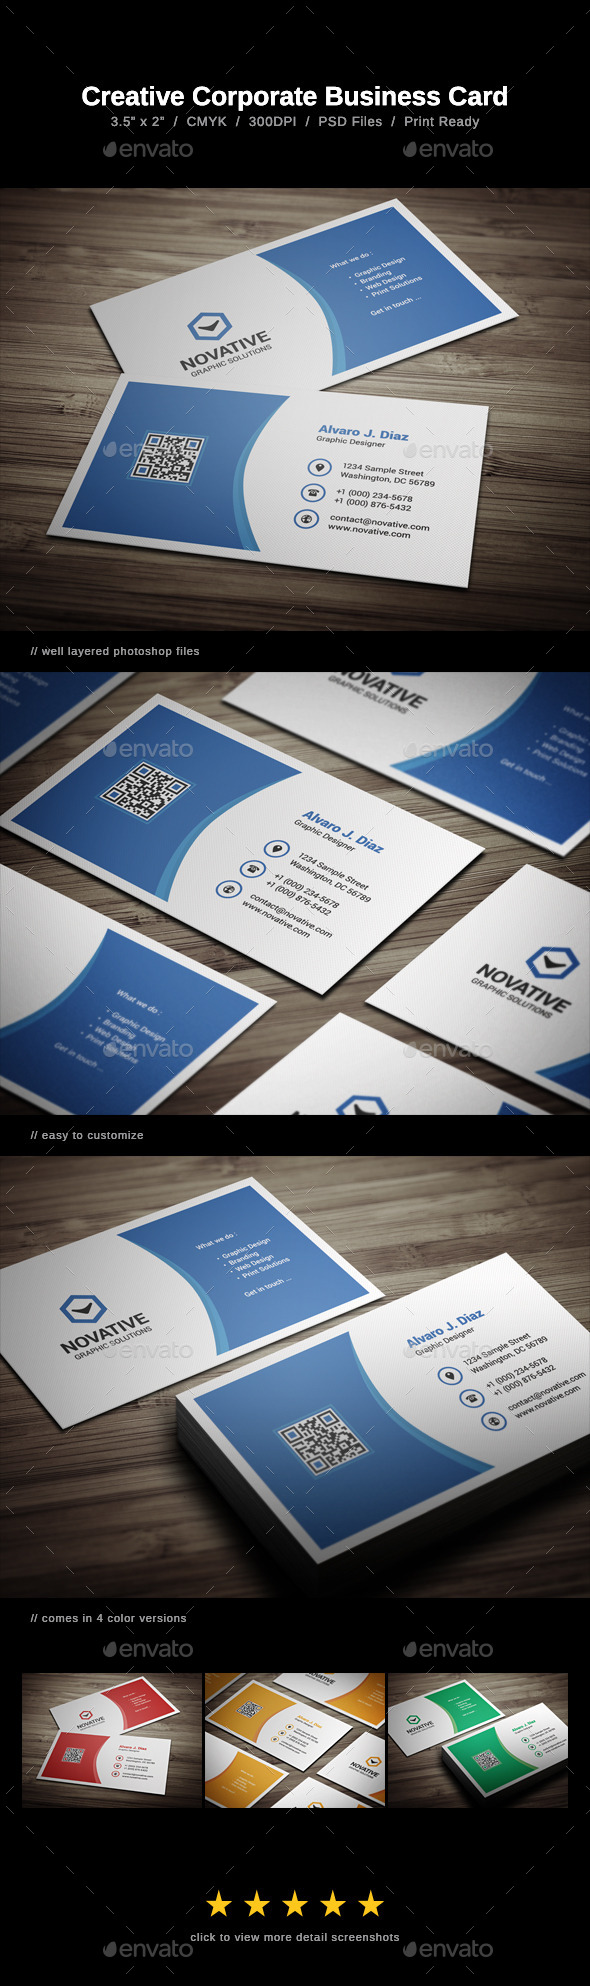 GraphicRiver Creative Corporate Business Card 8969470